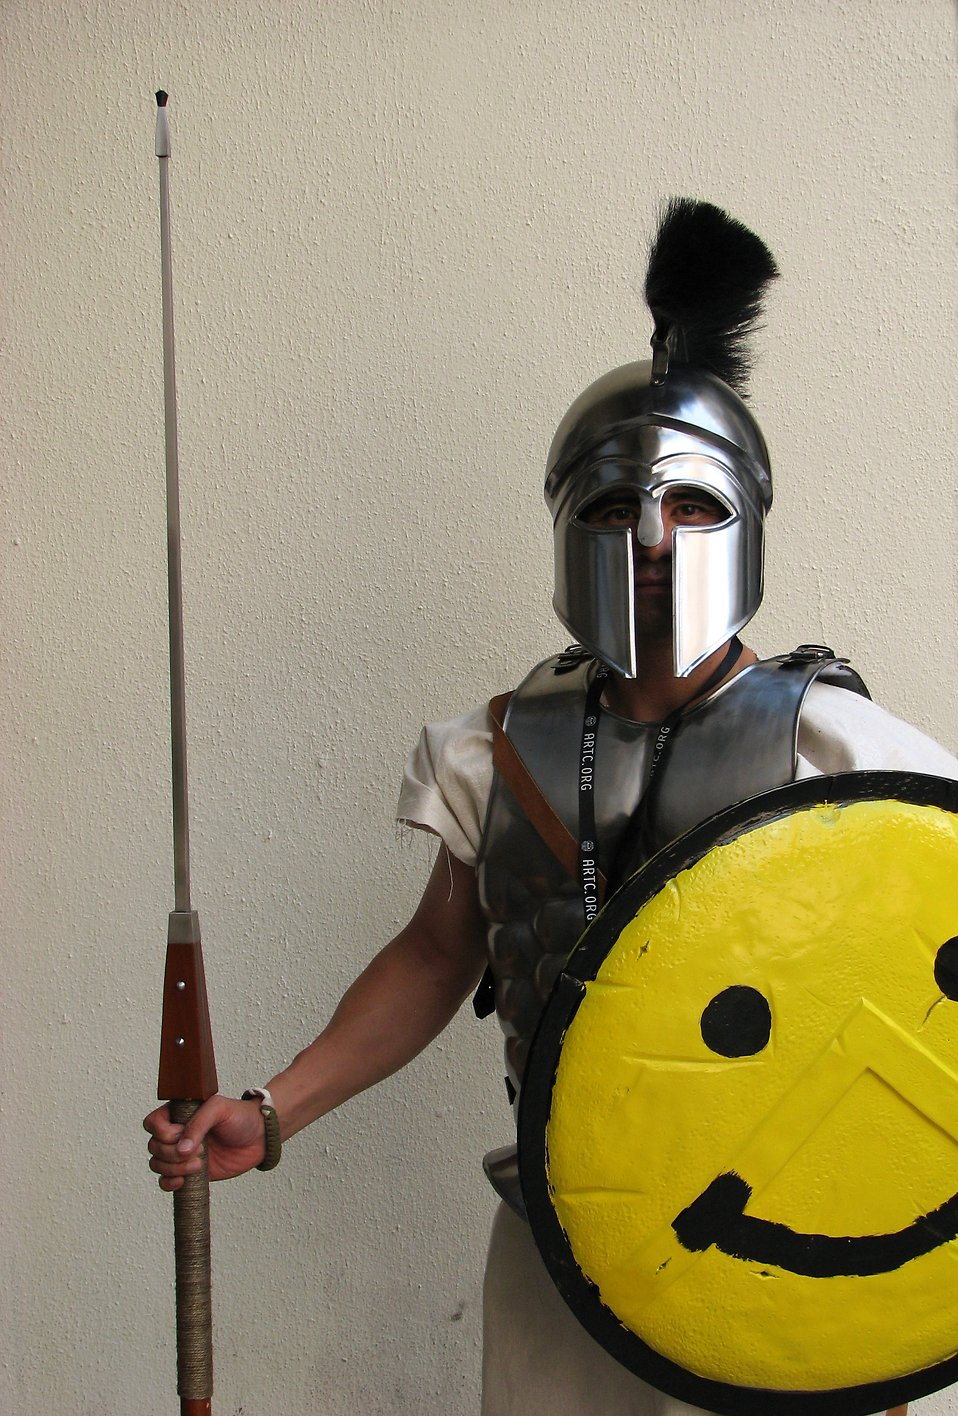 Man in Spartan armor with happy face at Dragoncon 2008 : Free Stock Photo